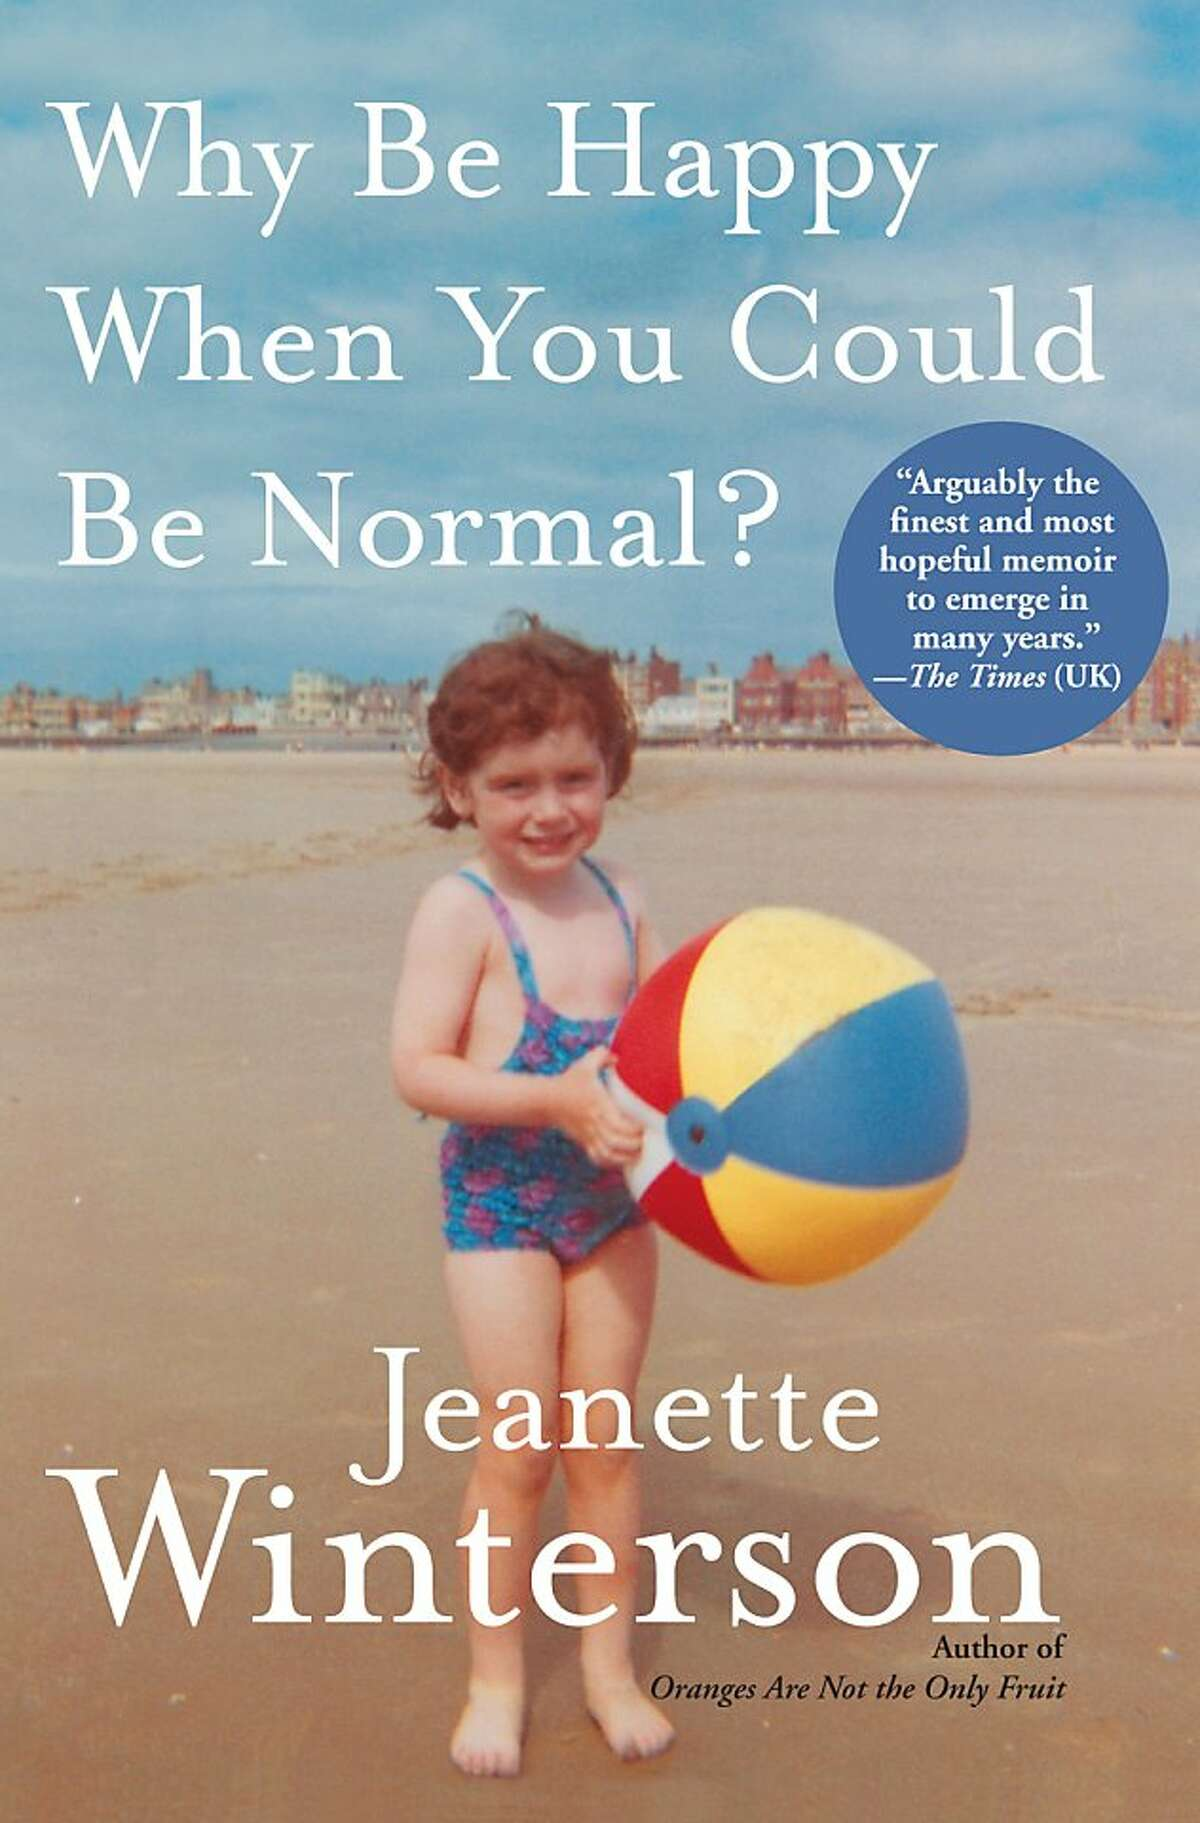 """""""Why Be Happy When You Could Be Normal?"""" by Jeanette Winterson"""